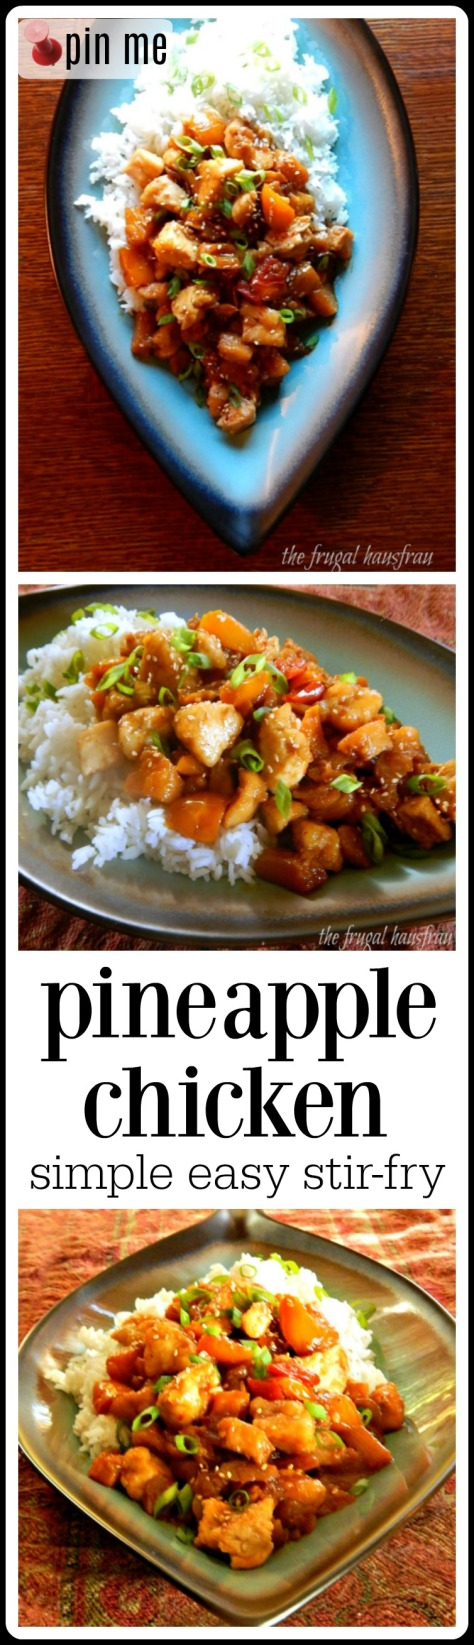 Pineapple Chicken, sweet/spicy deliciousness! Plus it's super fast and easy!